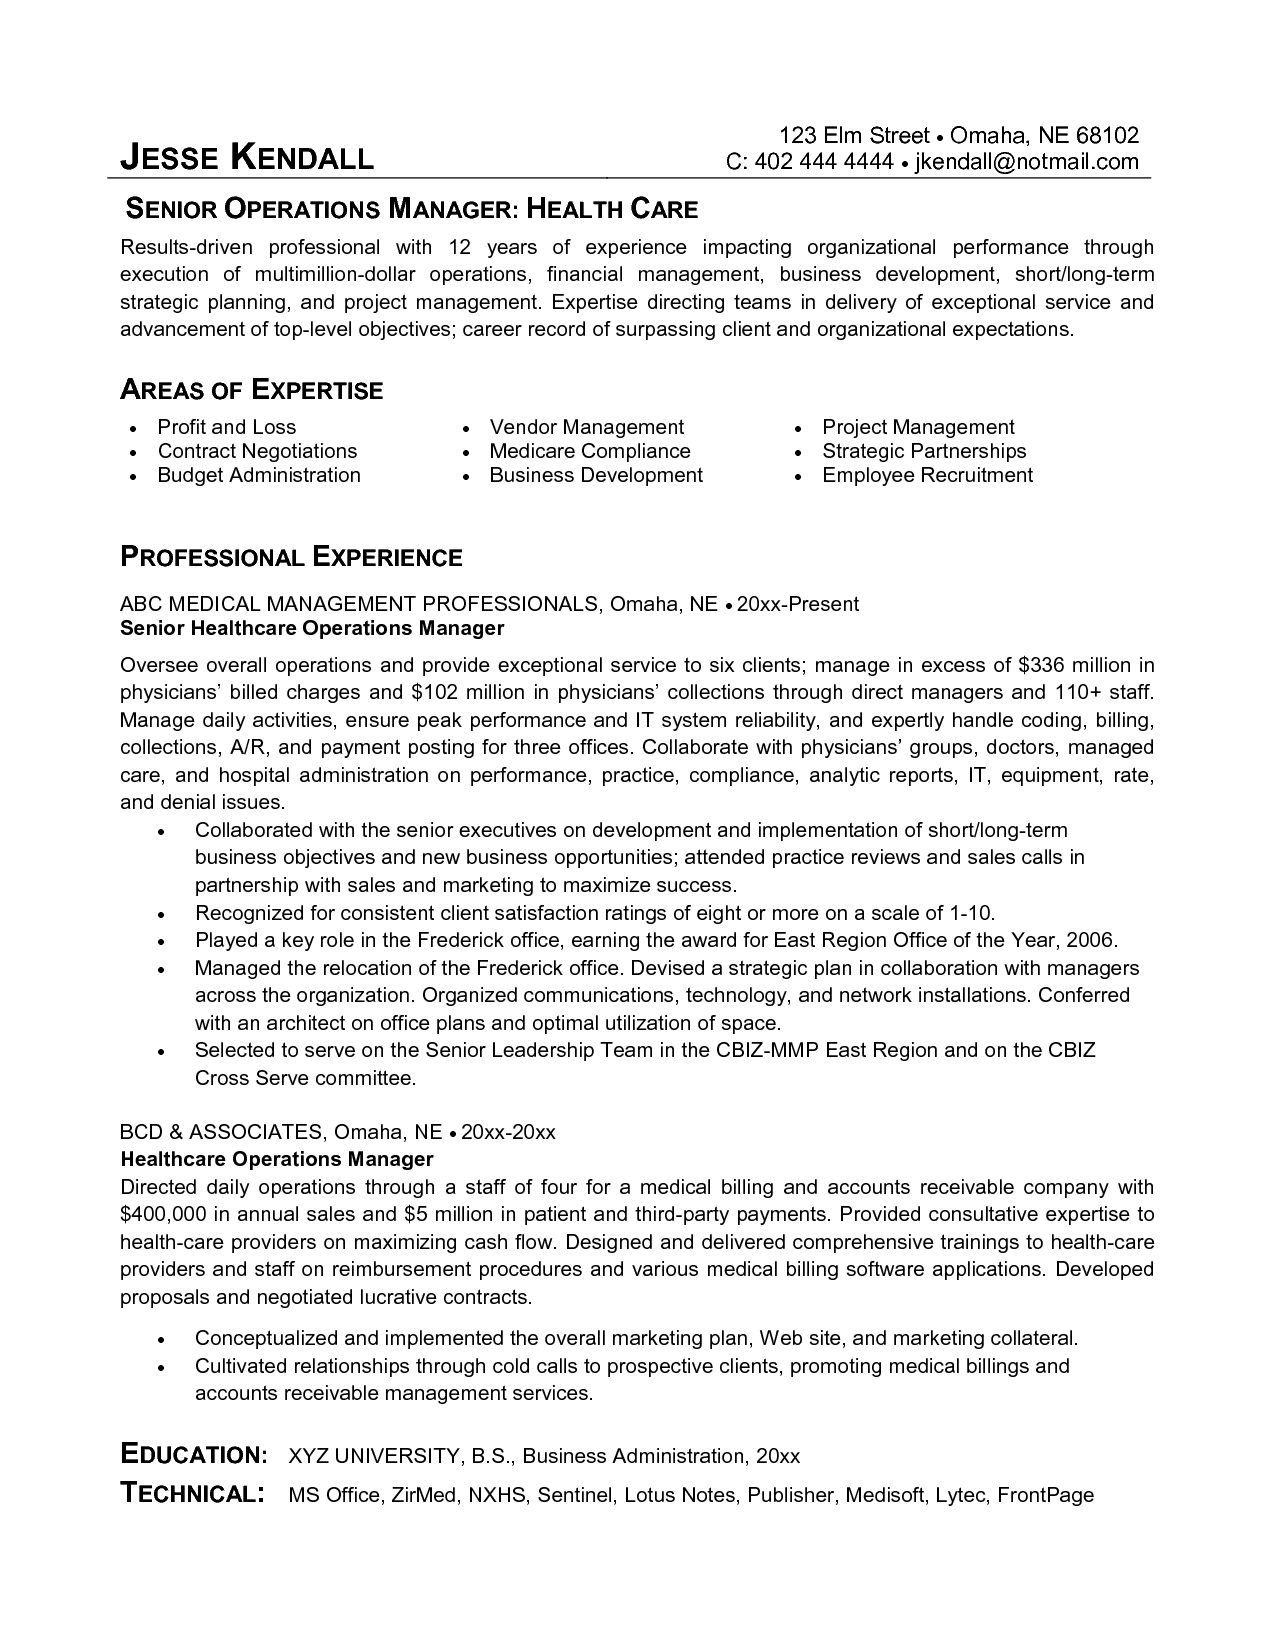 Resume Examples Healthcare Management Examples Healthcare Management Resume Resumeexampl Resume Objective Examples Operations Management Medical Resume